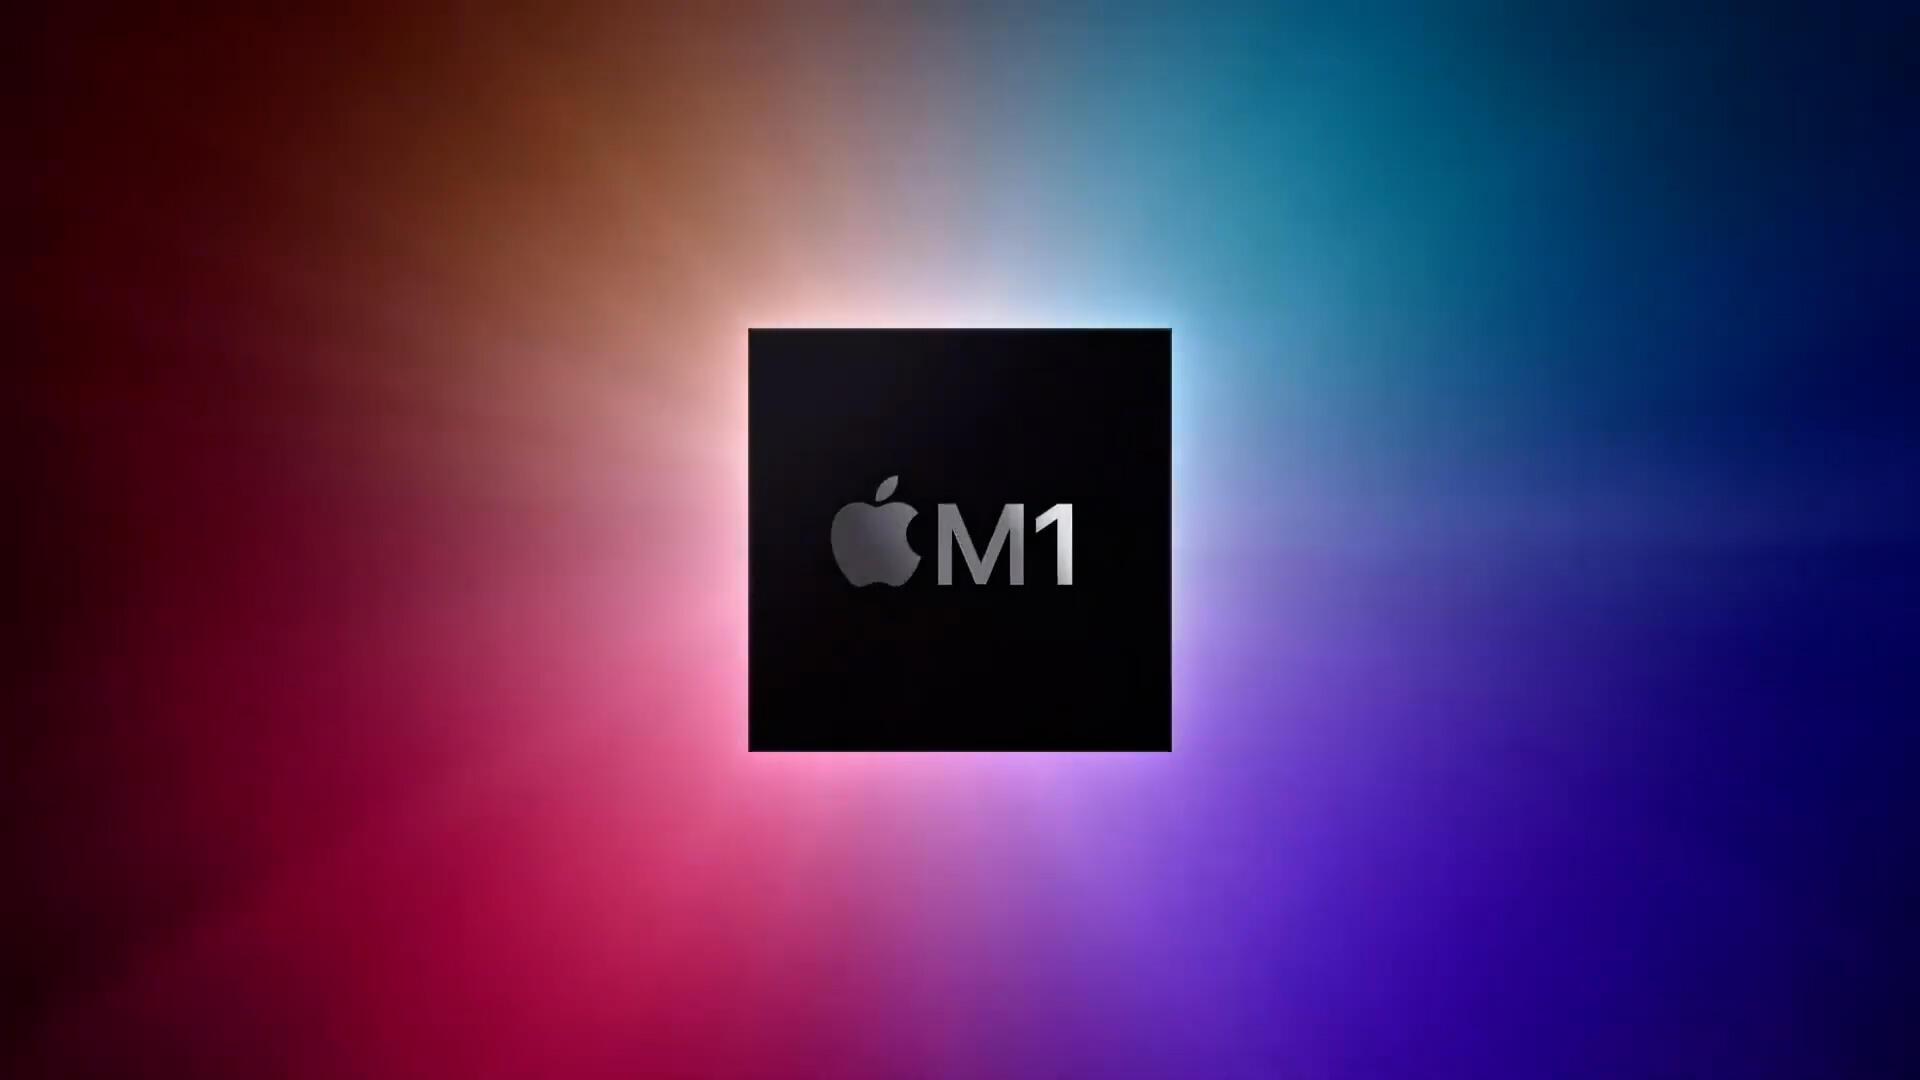 Video: Apple unveils new Apple silicon M1 Mac chip